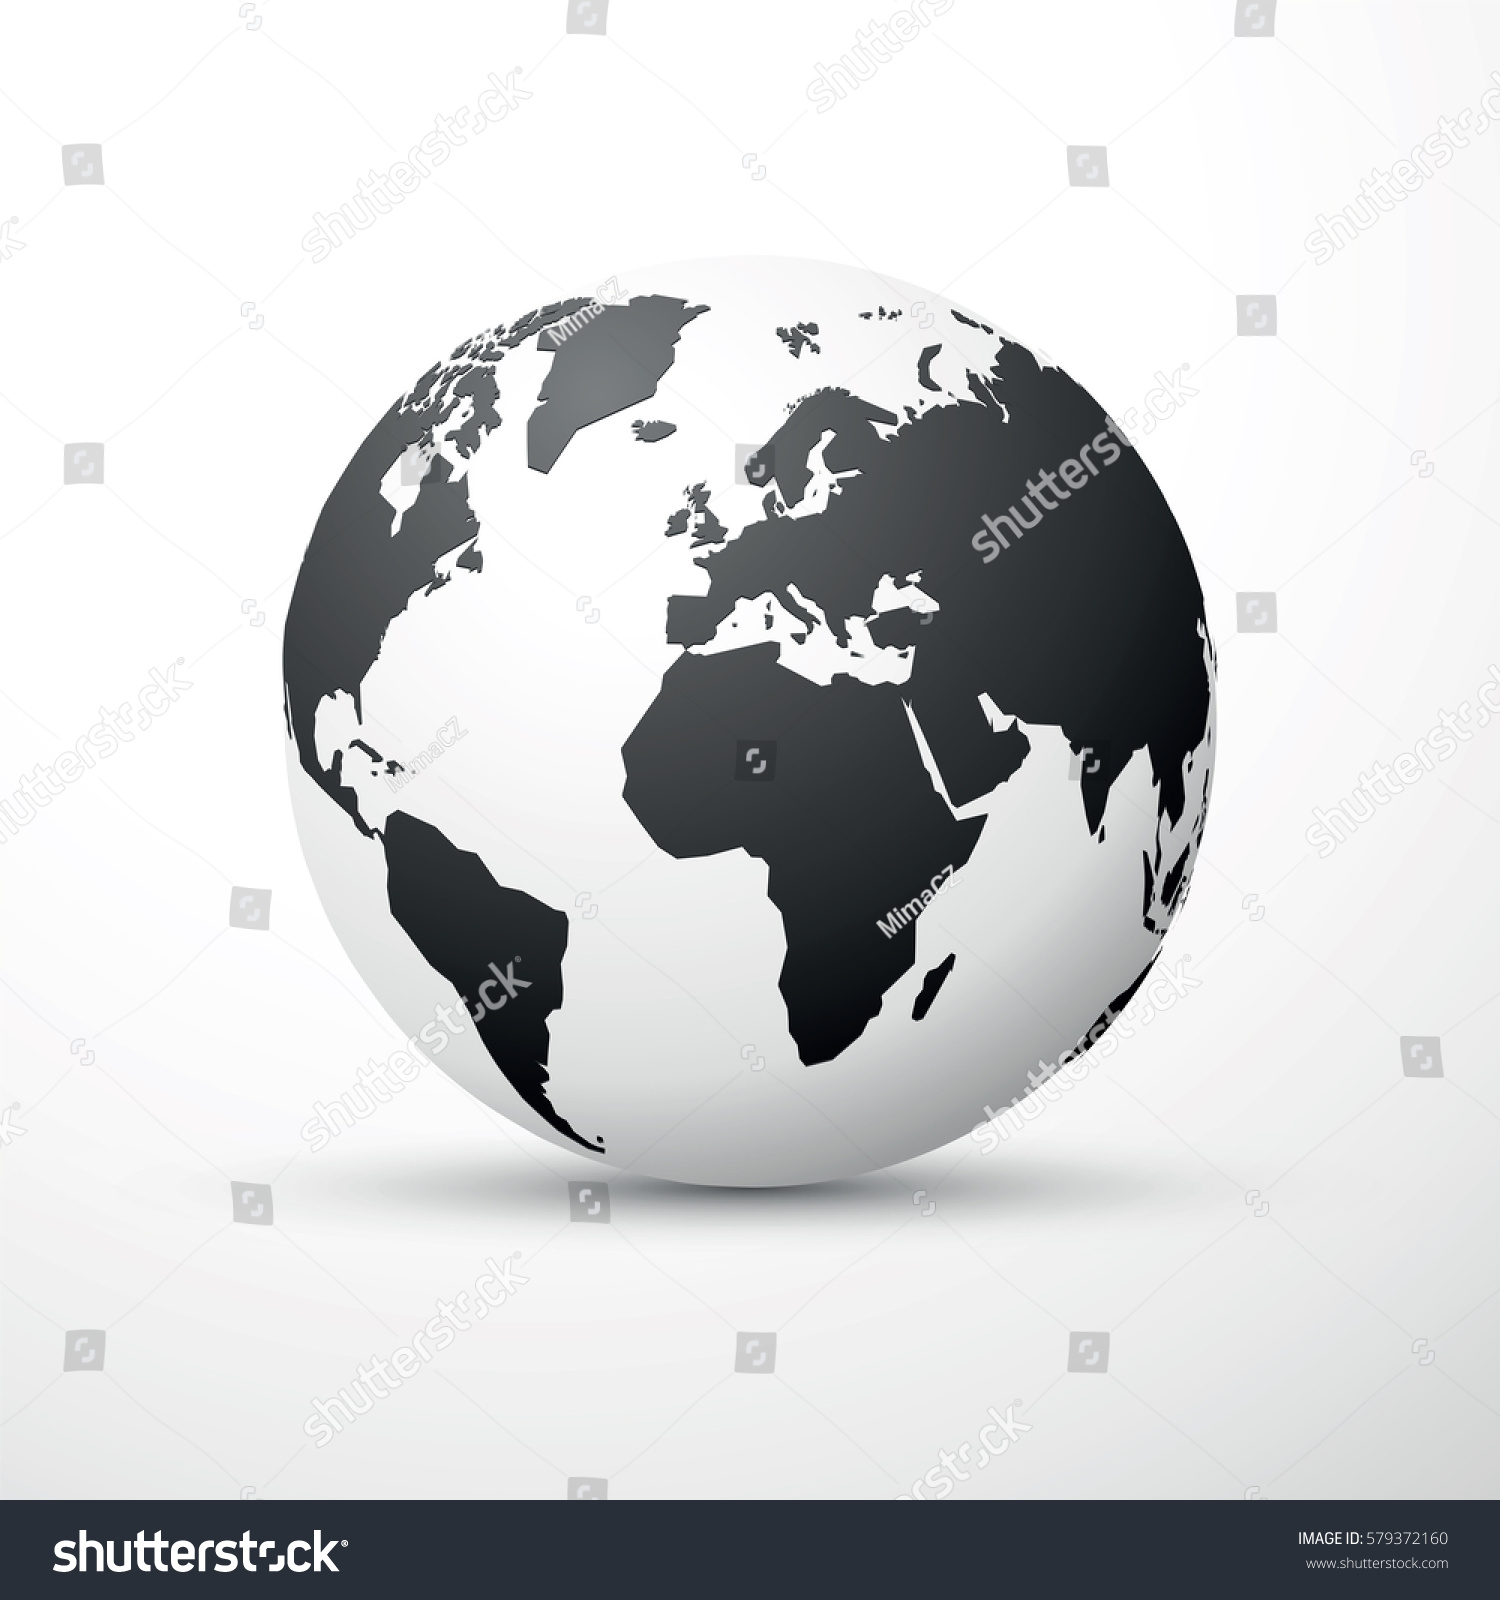 Black earth globe world map design stock vector 579372160 black earth globe world map design gumiabroncs Image collections